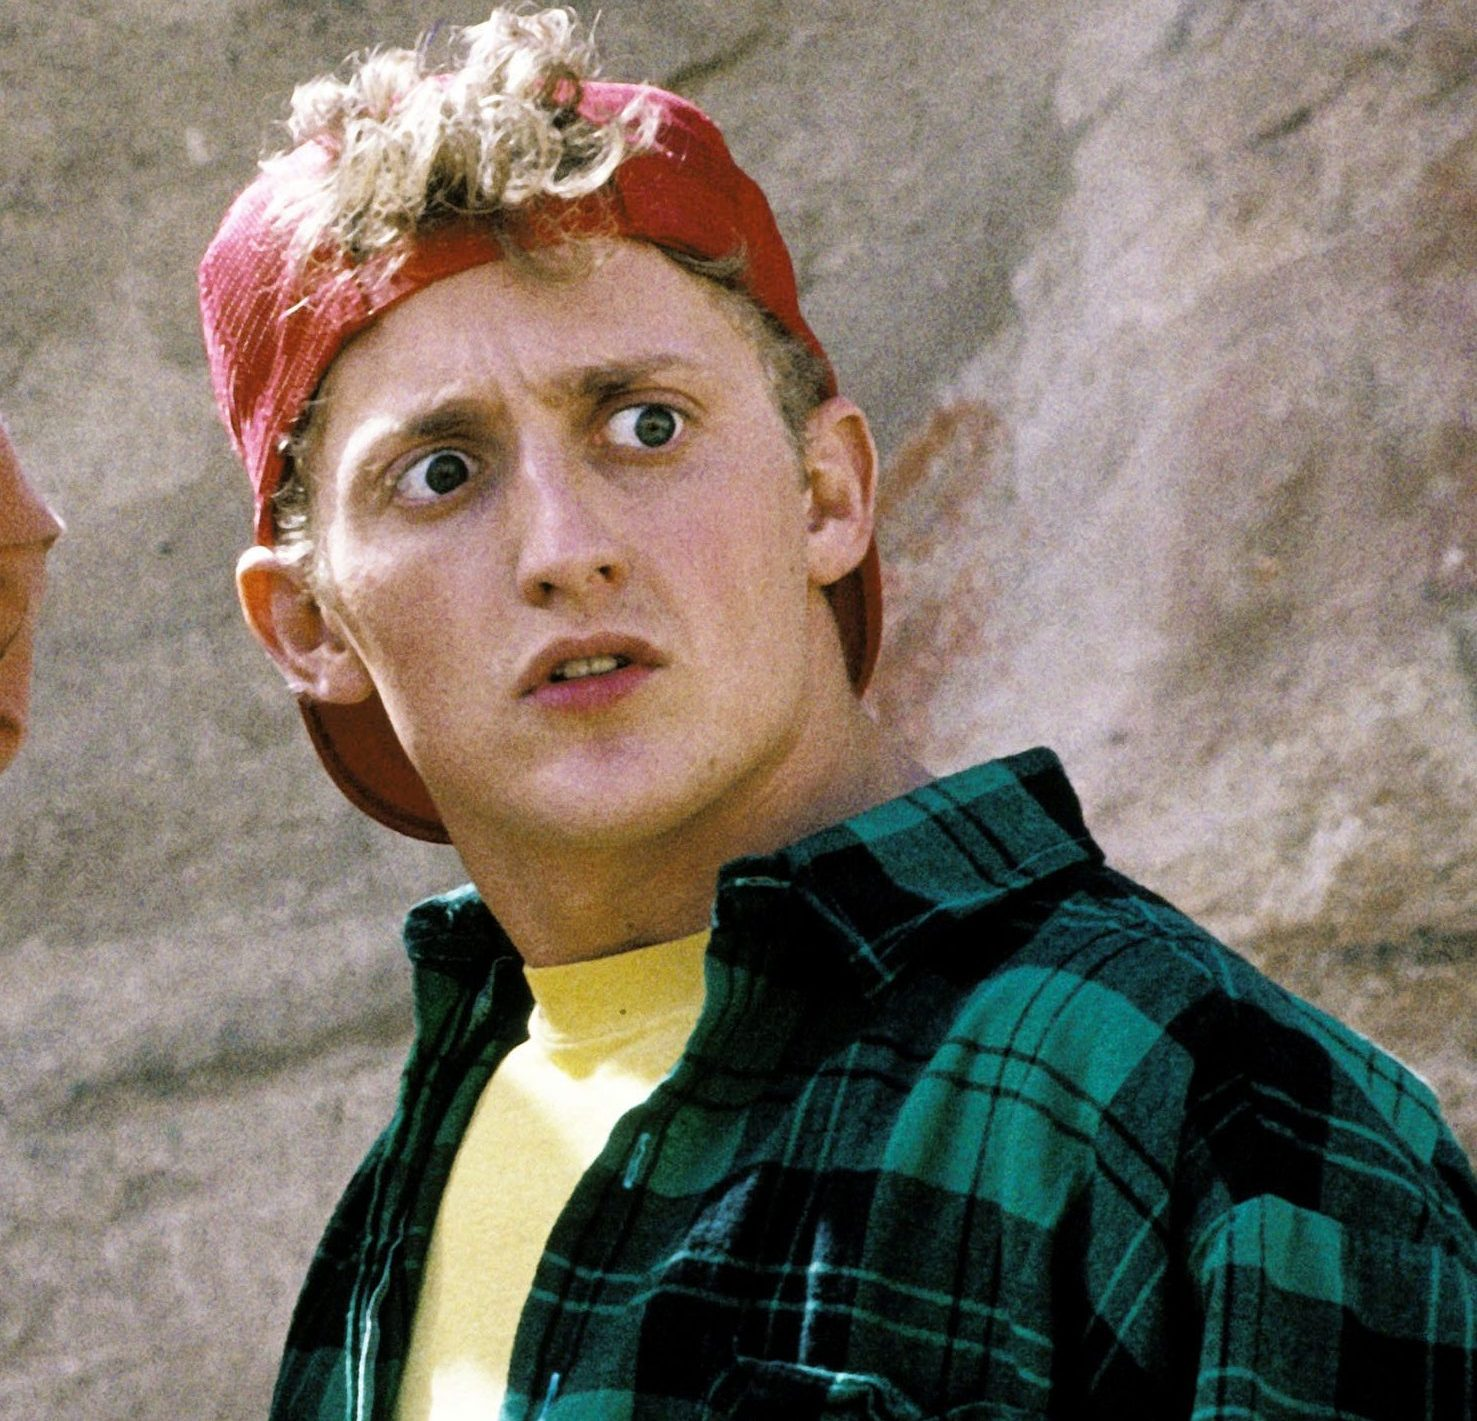 rexfeatures 5883268w e1616515768825 25 Totally Non-Heinous Facts About Bill & Ted's Excellent Adventure!